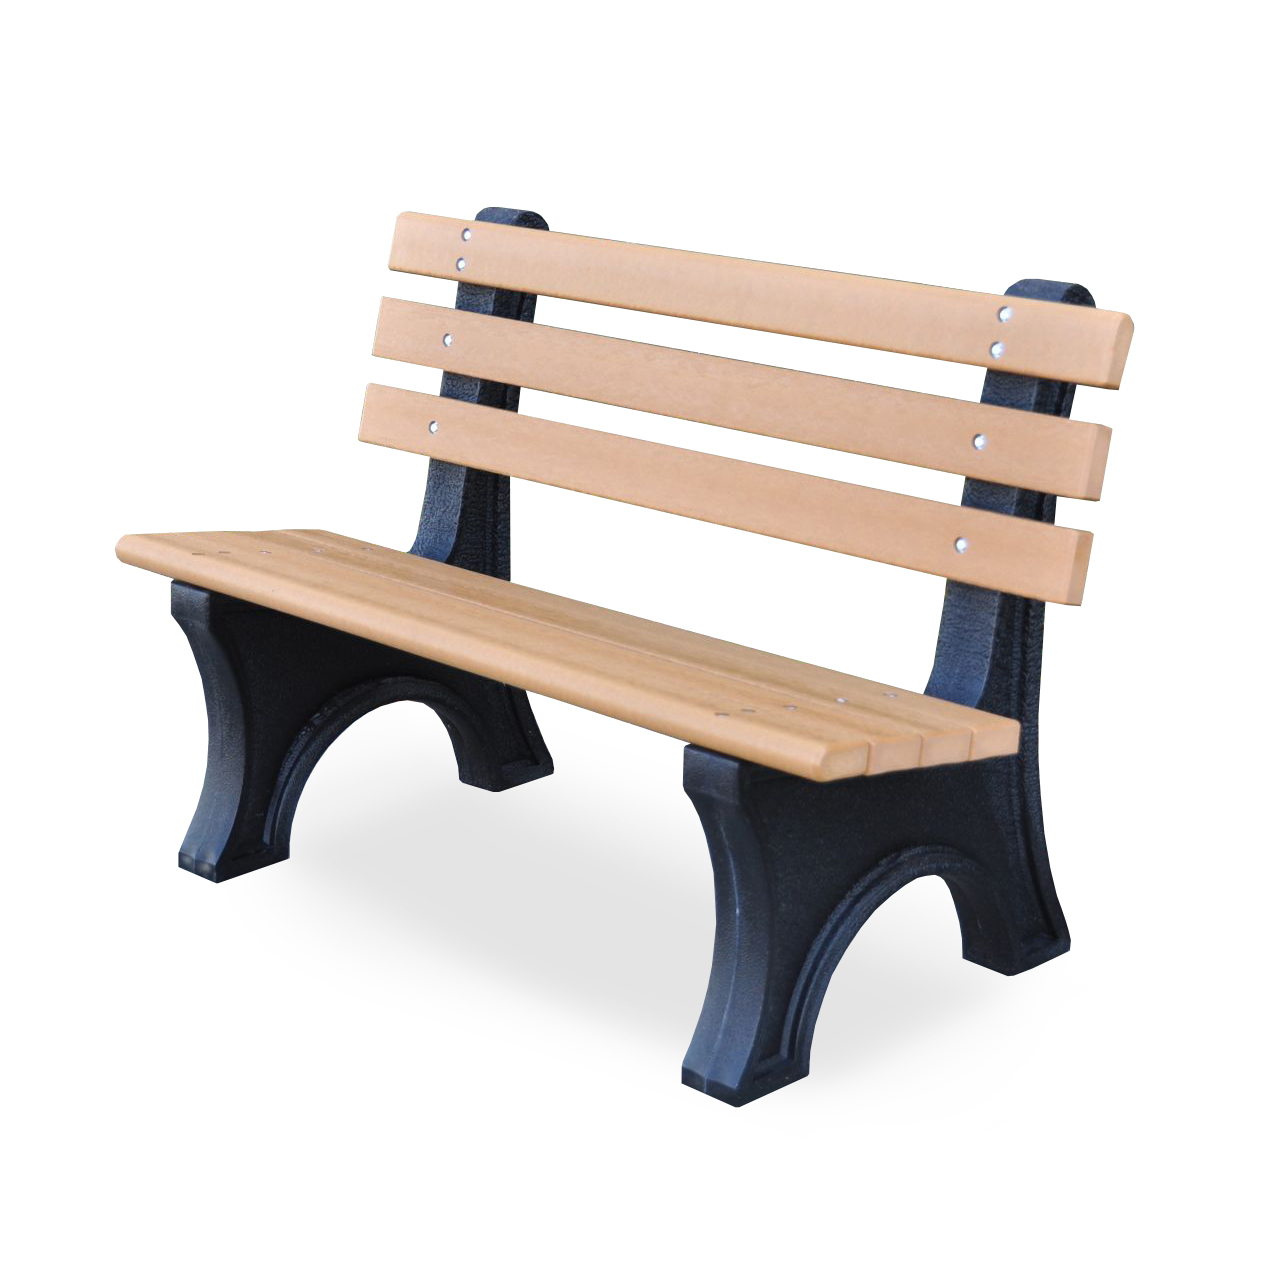 Astounding Recycled Plastic Comfort Park Avenue Bench Machost Co Dining Chair Design Ideas Machostcouk